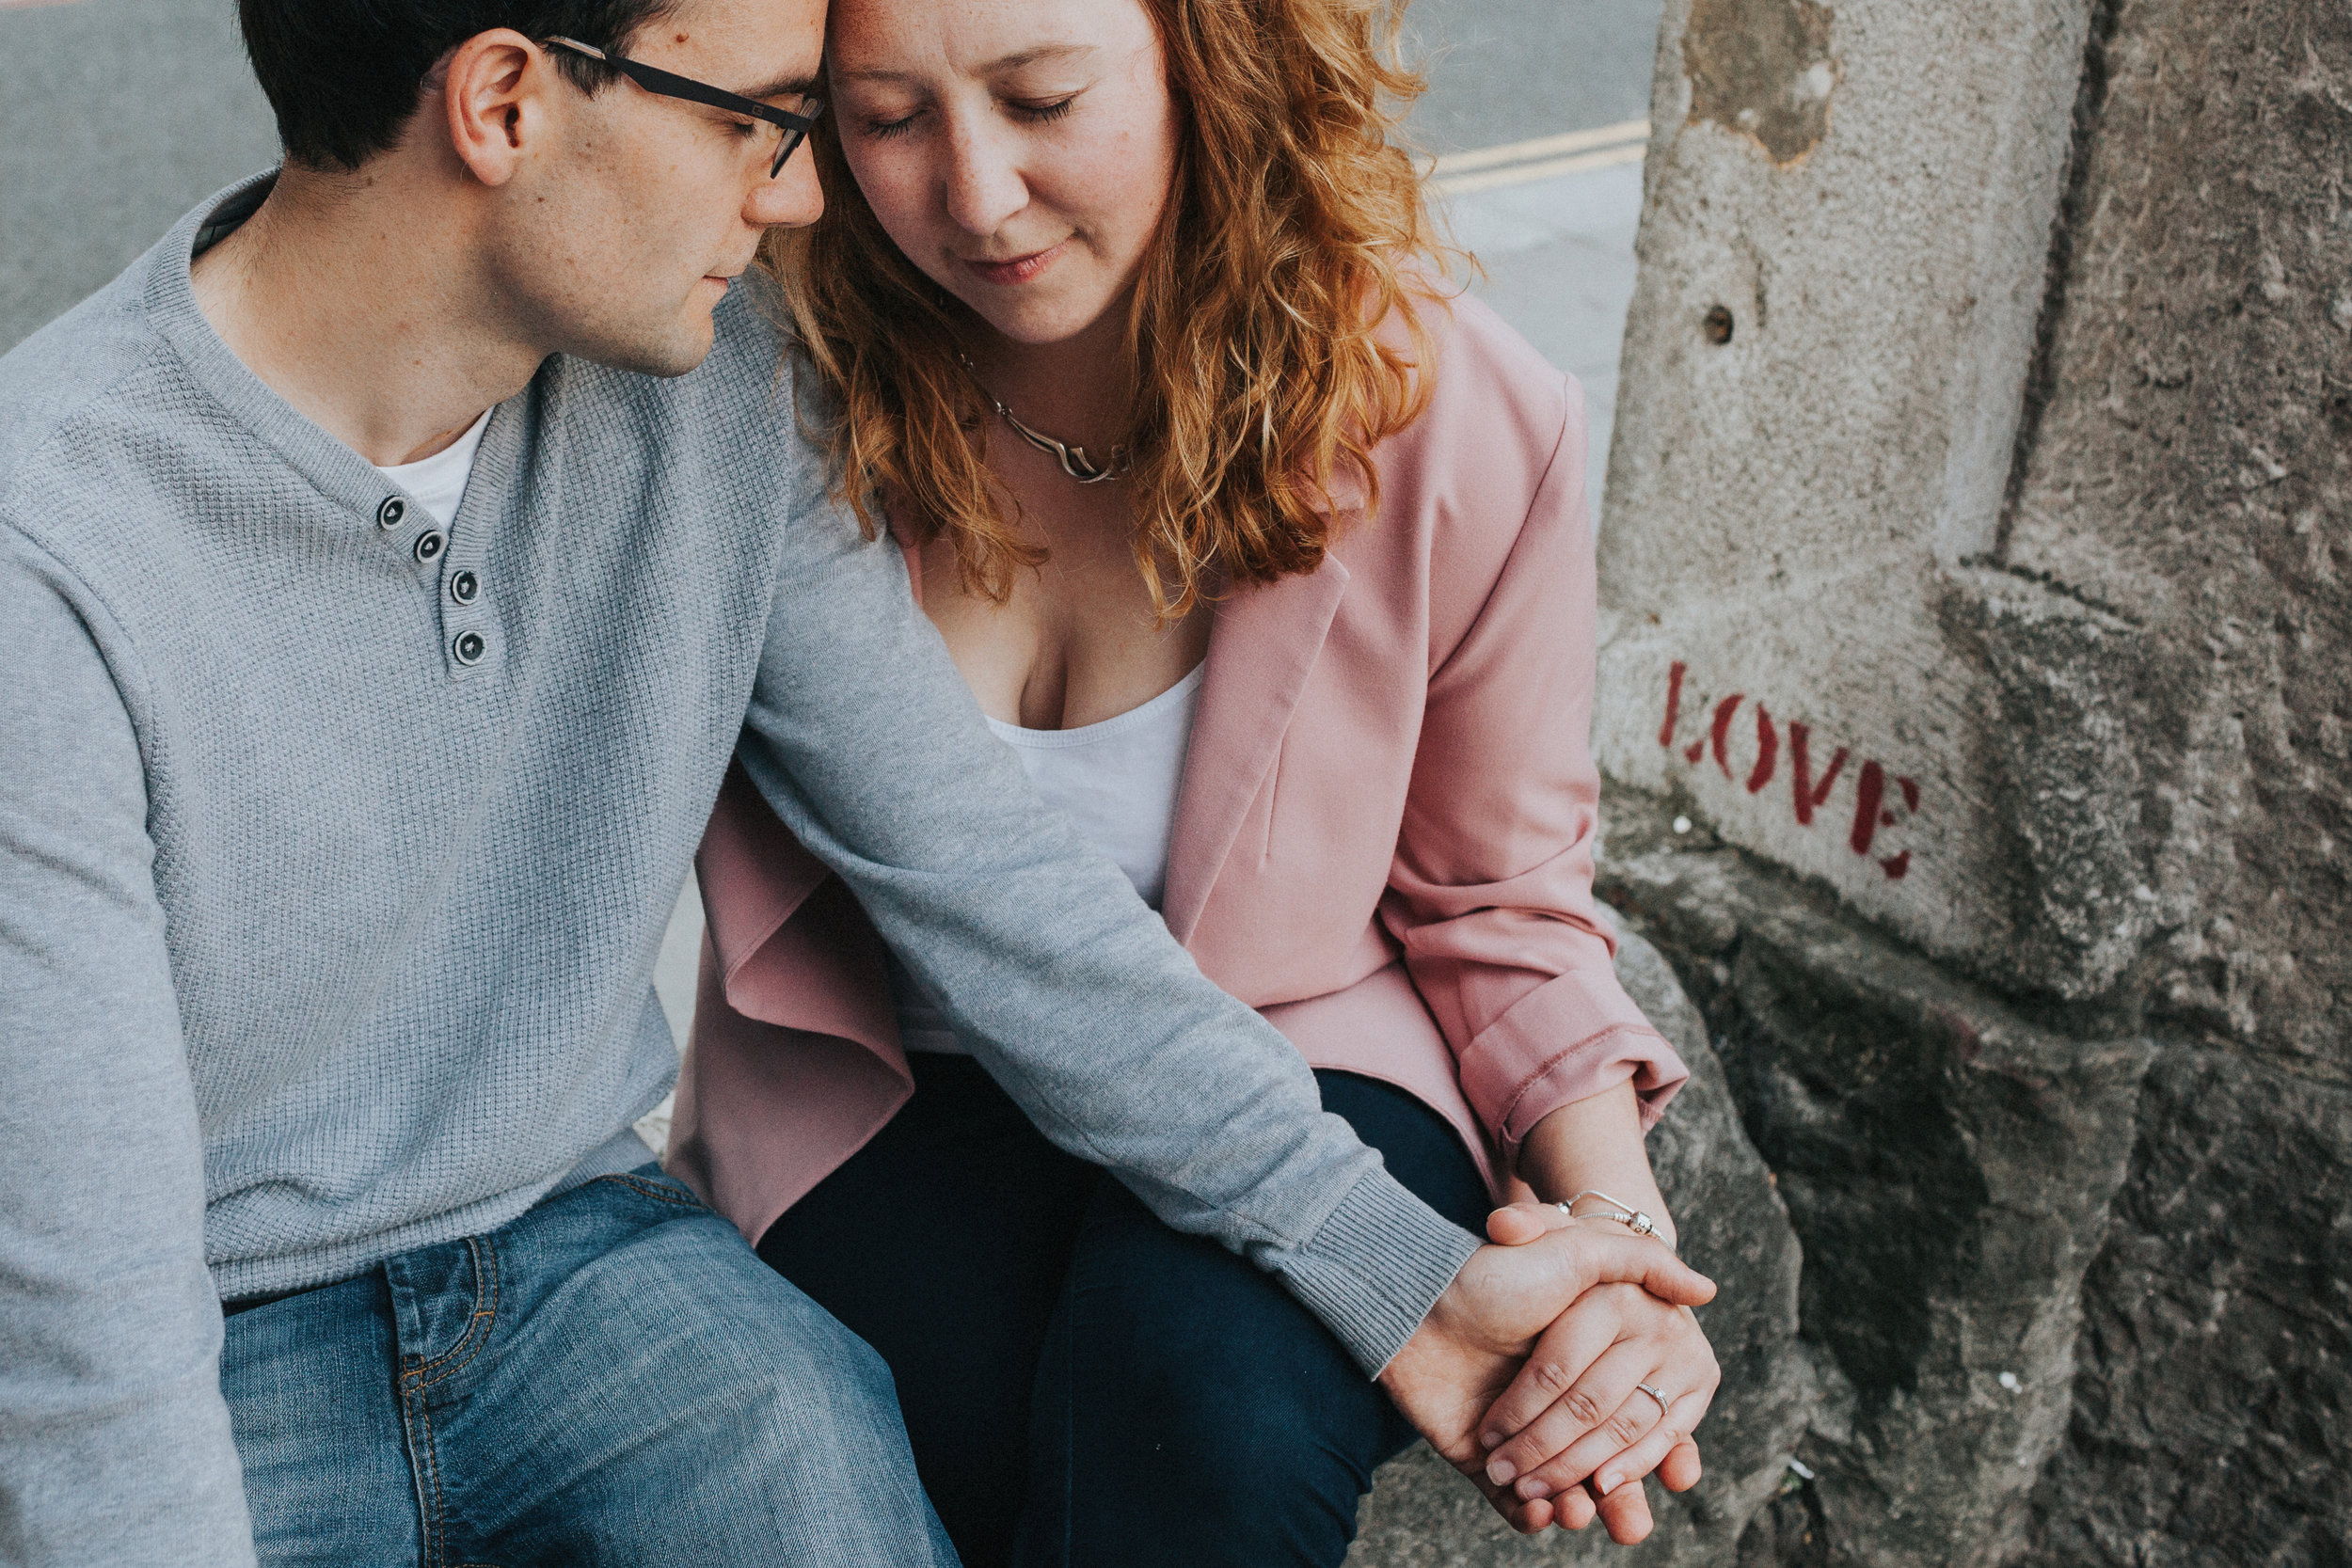 00016Liverpool-Engagement-Shoot-Jess-and-James.jpg